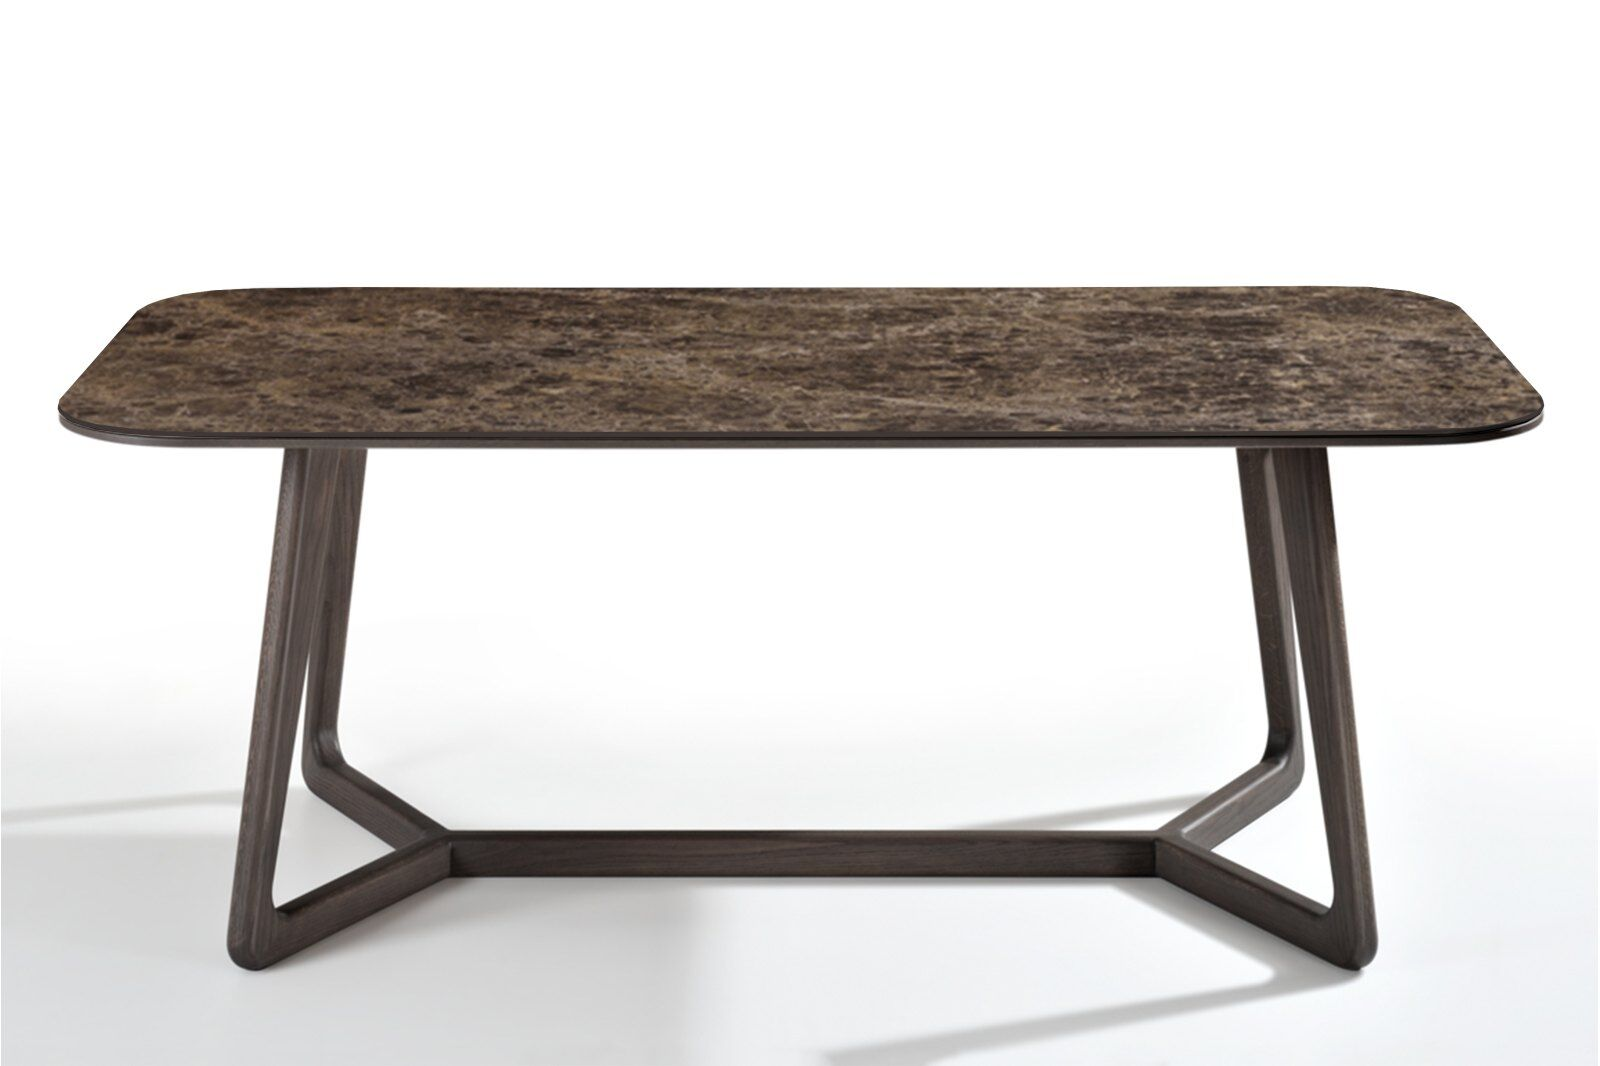 Totem Marble-effect Ceramic Top Dining Table 200cm / 1